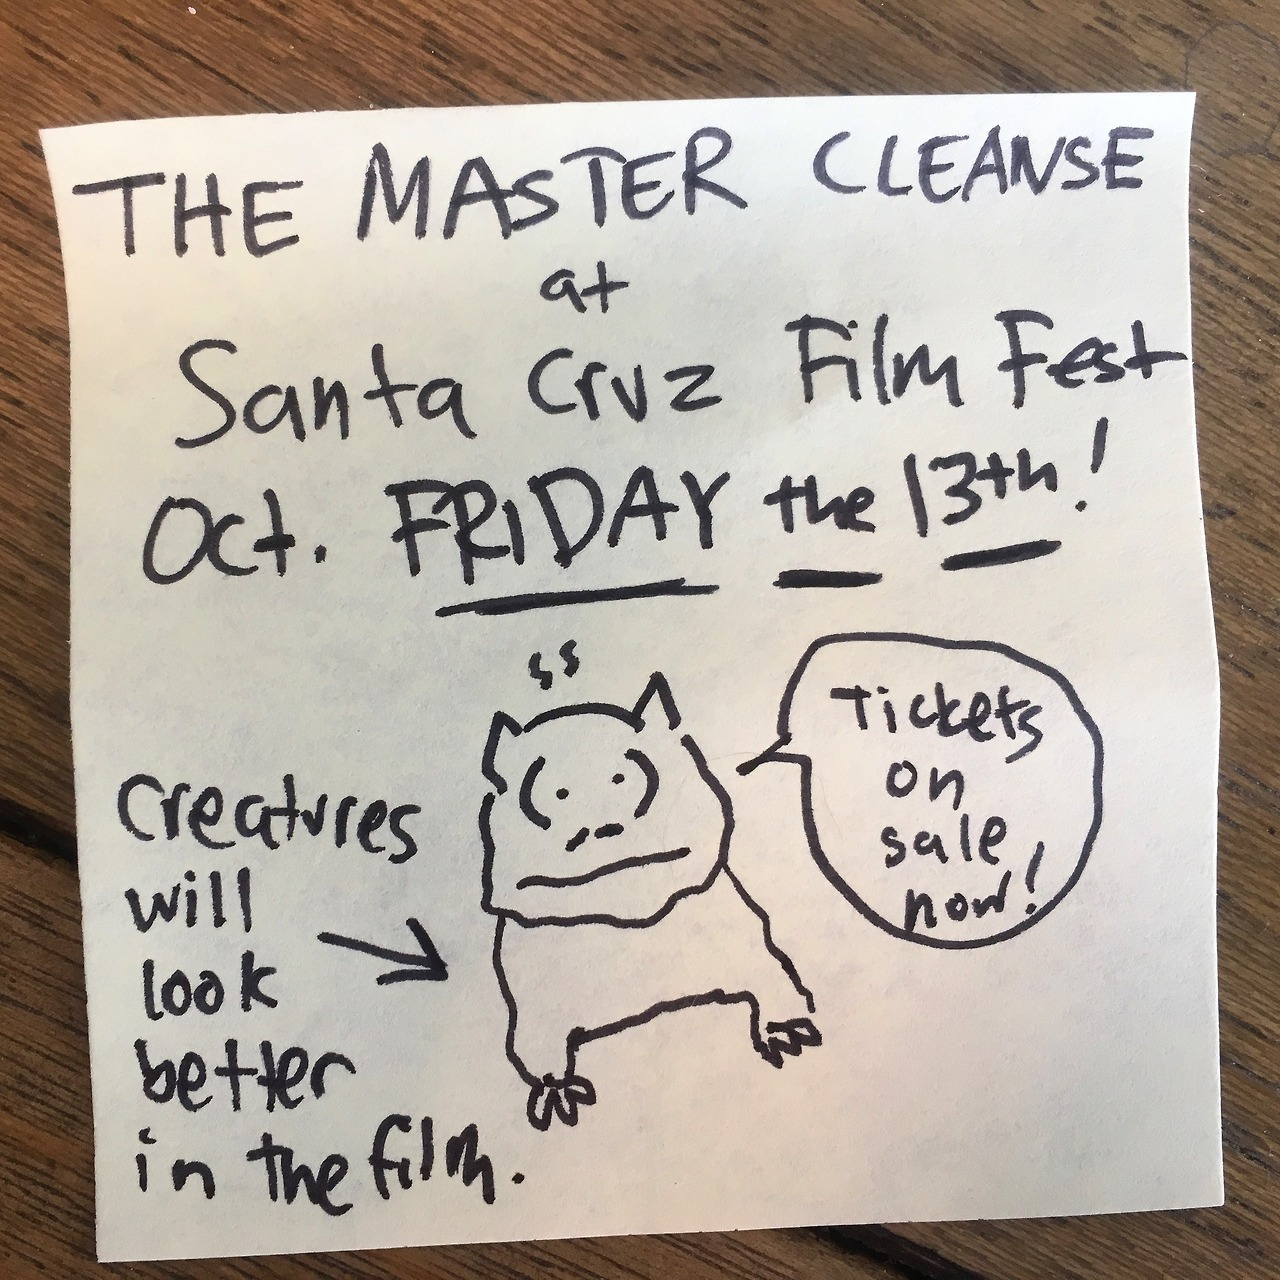 The Master Cleanse plays Santa Cruz, California October FRIDAY THE 13th!   Tickets here  .